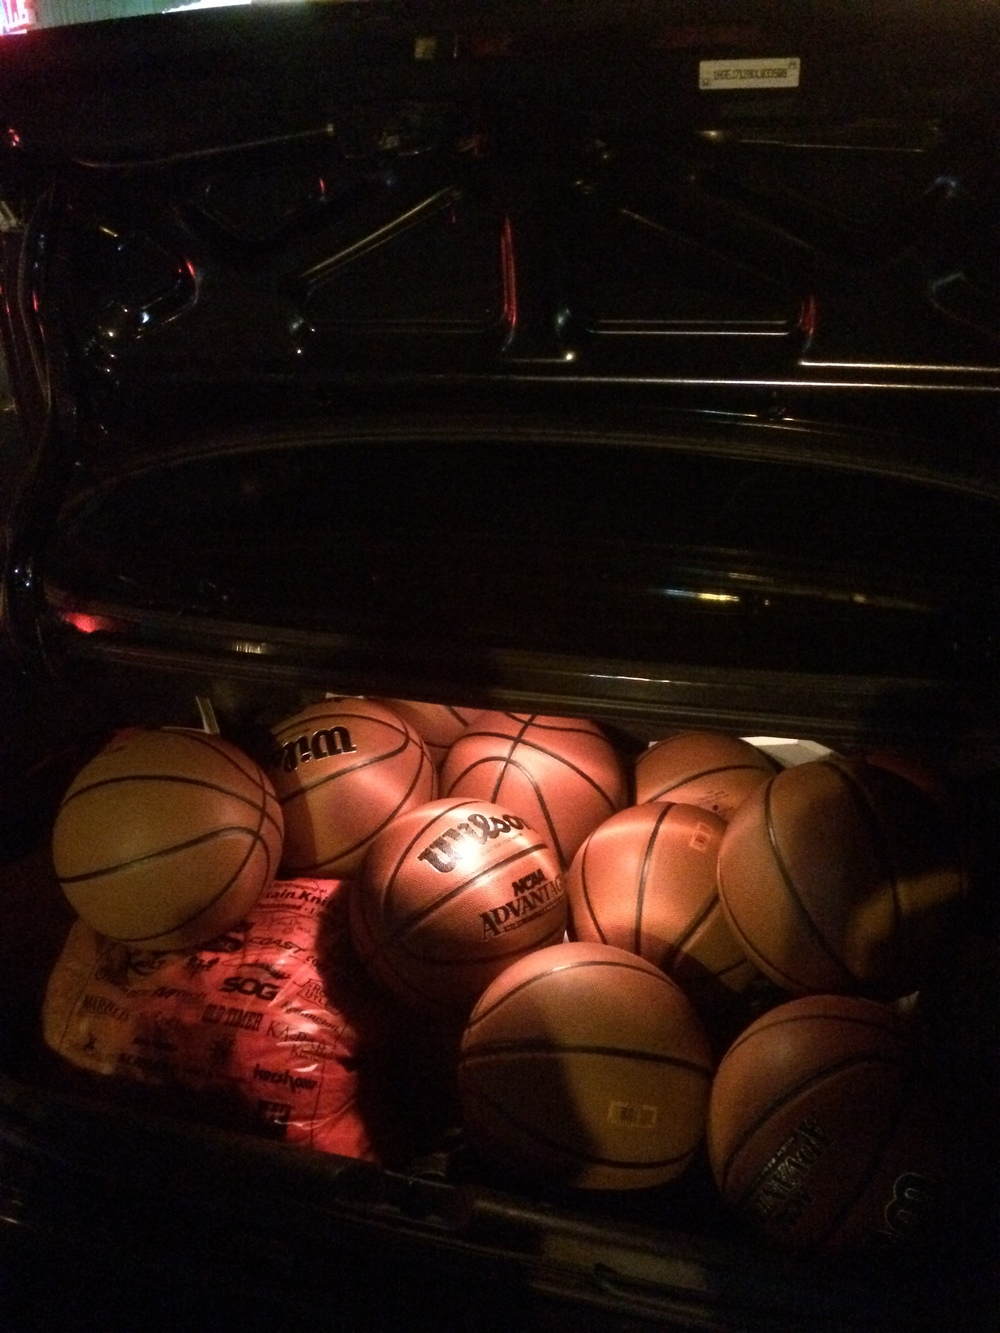 Buying Basketballs 2014 13.jpg